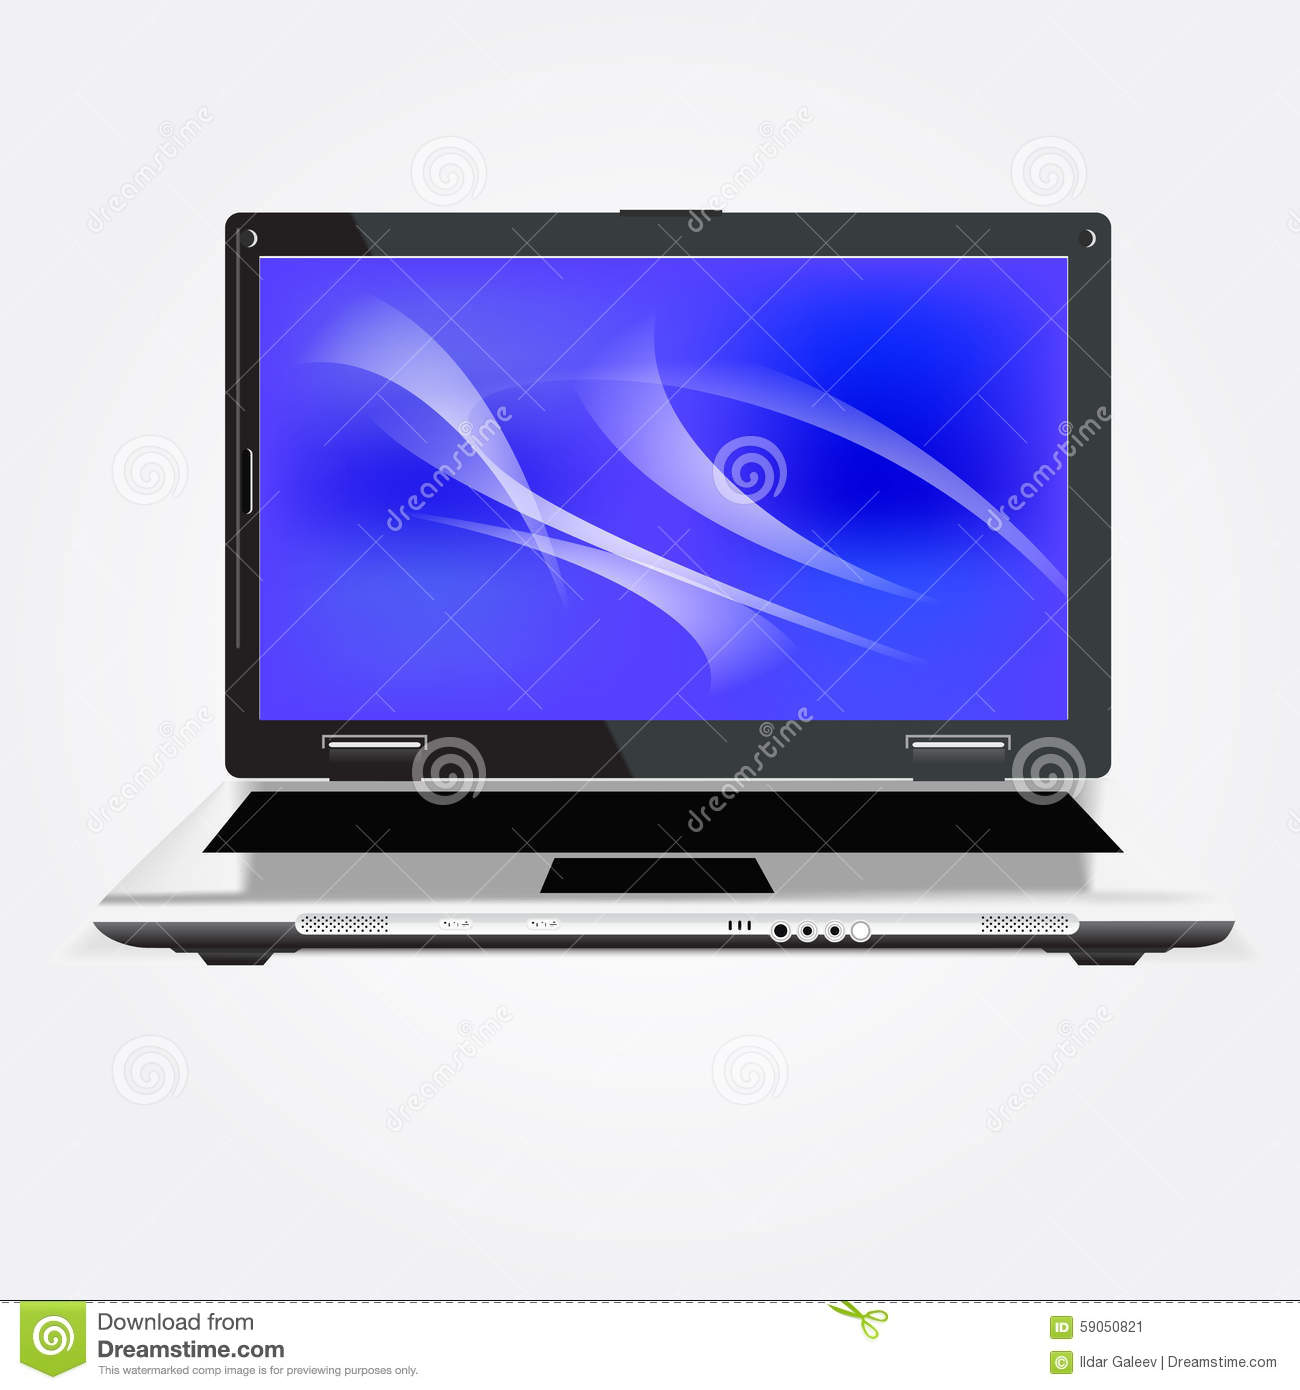 Laptop computer. Vector illustration isolated over white background.